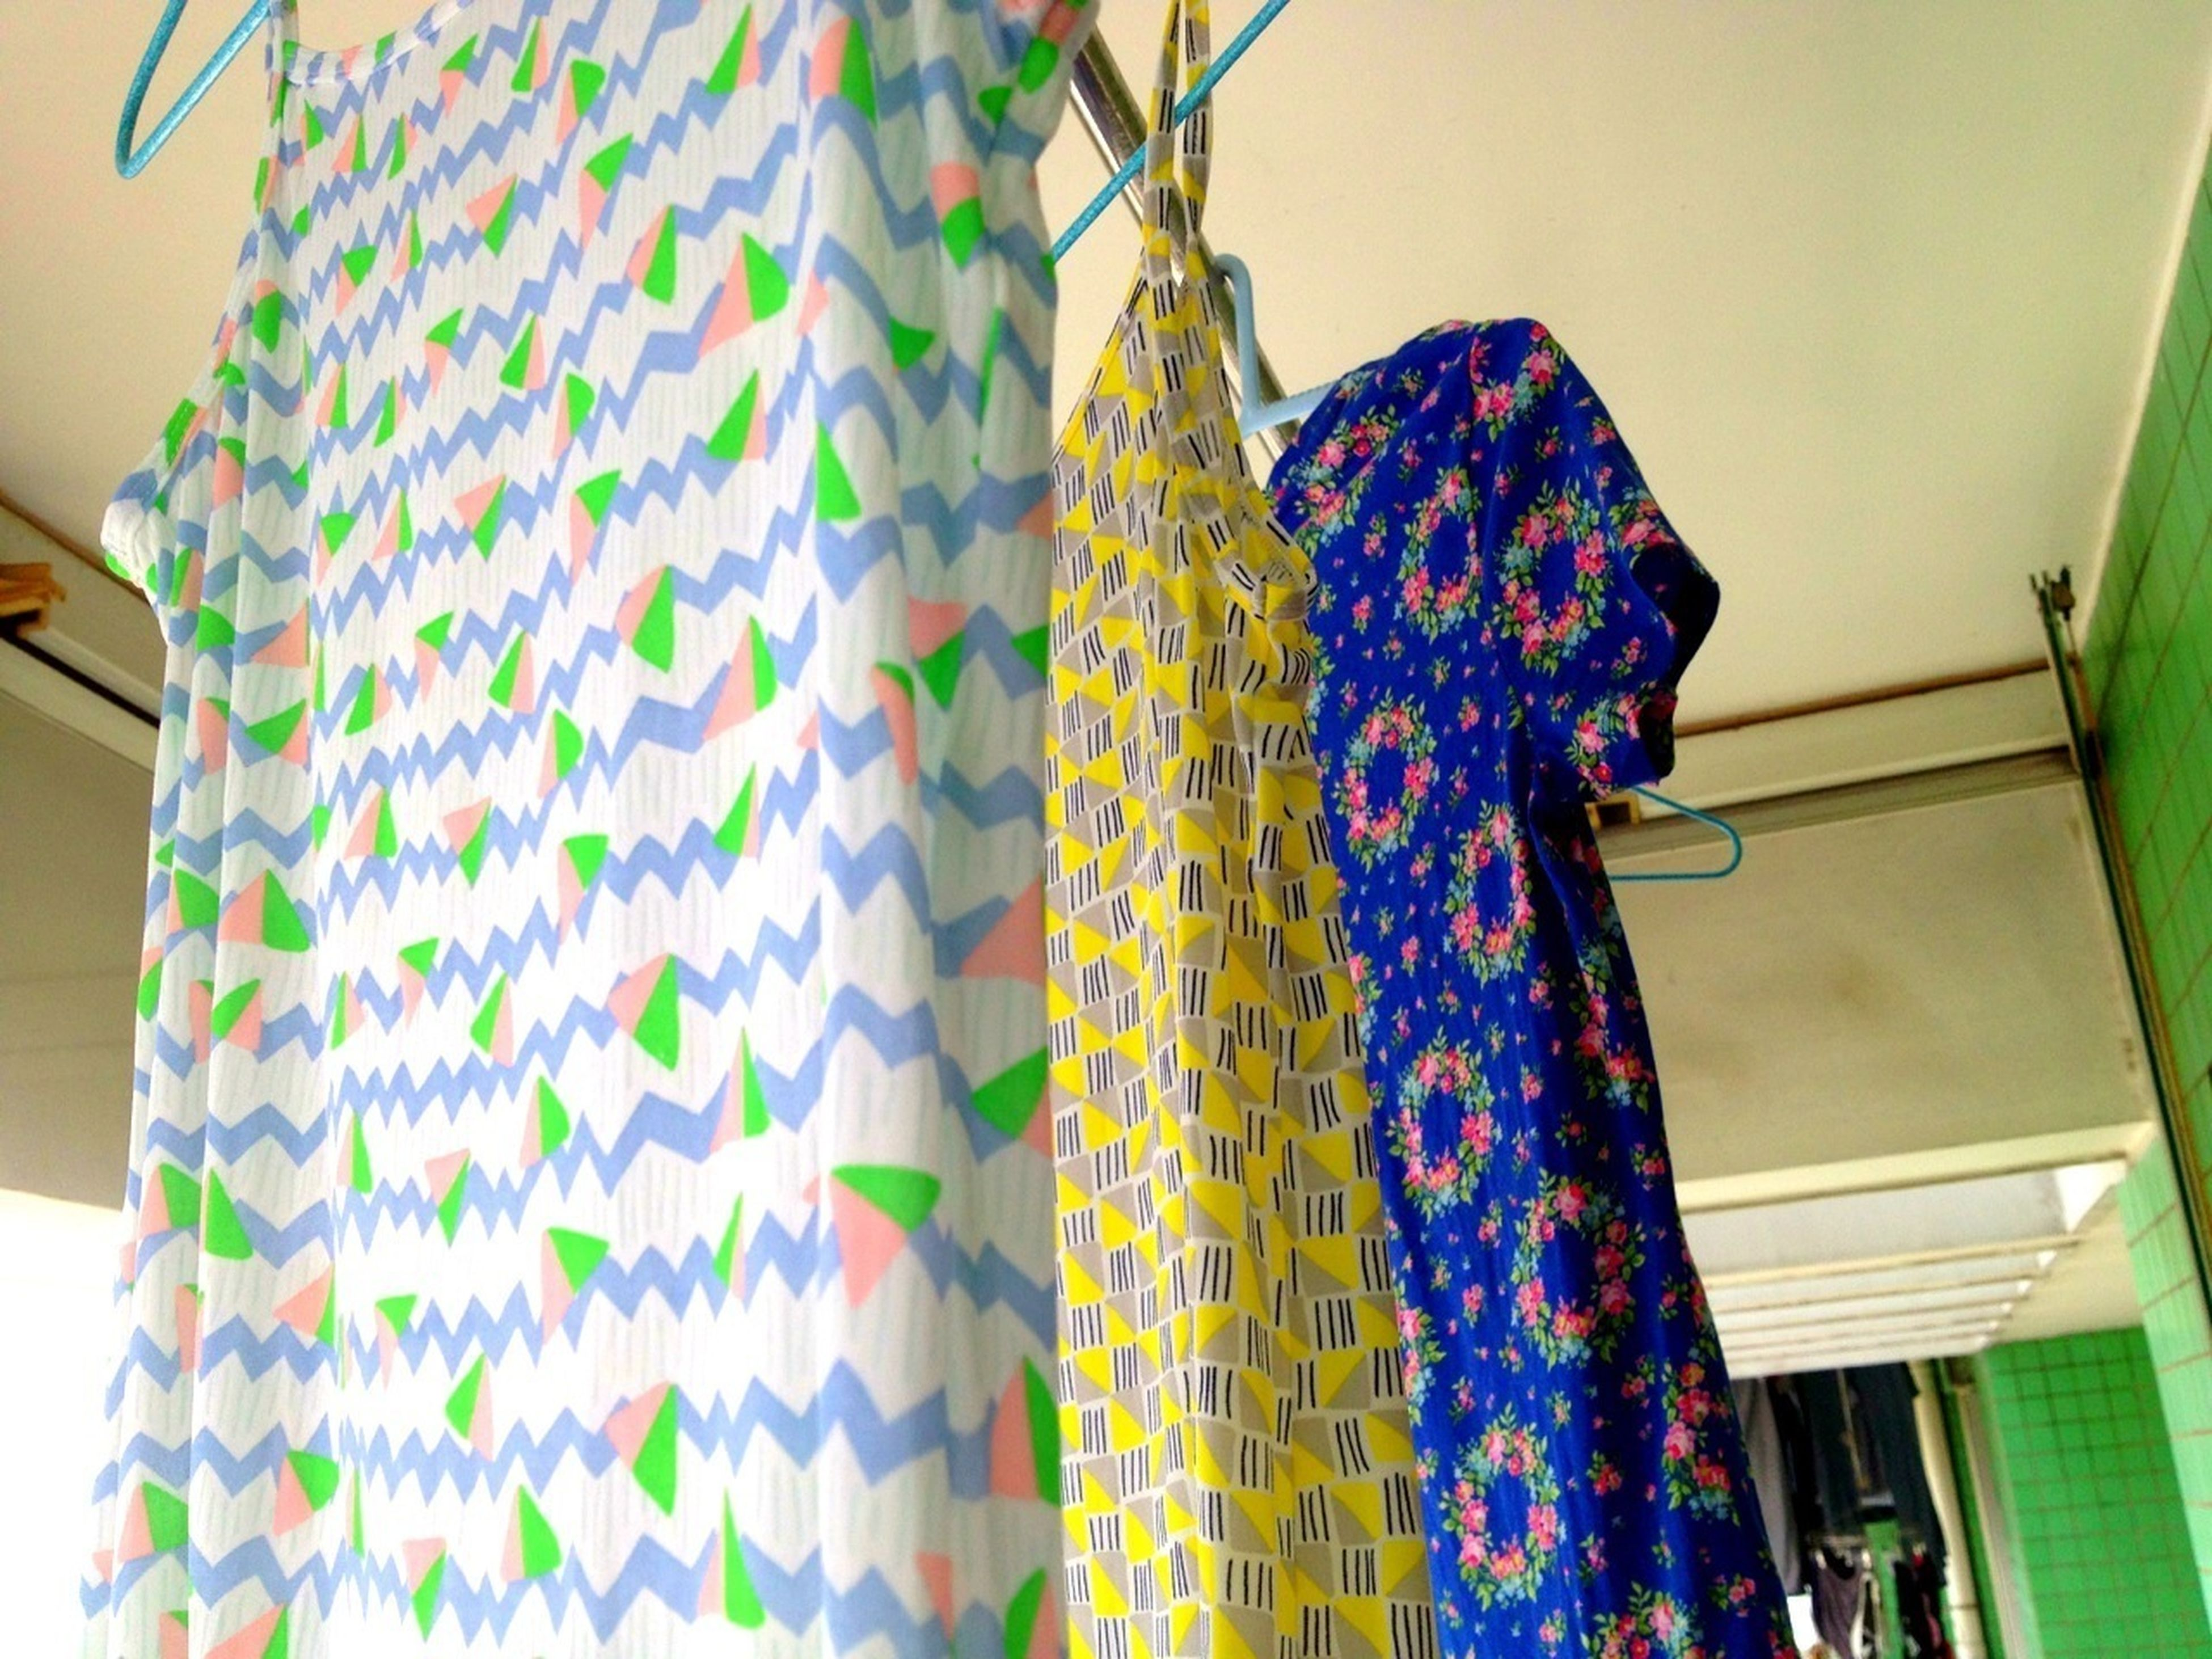 indoors, hanging, multi colored, wall - building feature, decoration, home interior, low angle view, textile, pattern, fabric, curtain, art and craft, creativity, no people, art, clothing, floral pattern, architecture, design, variation